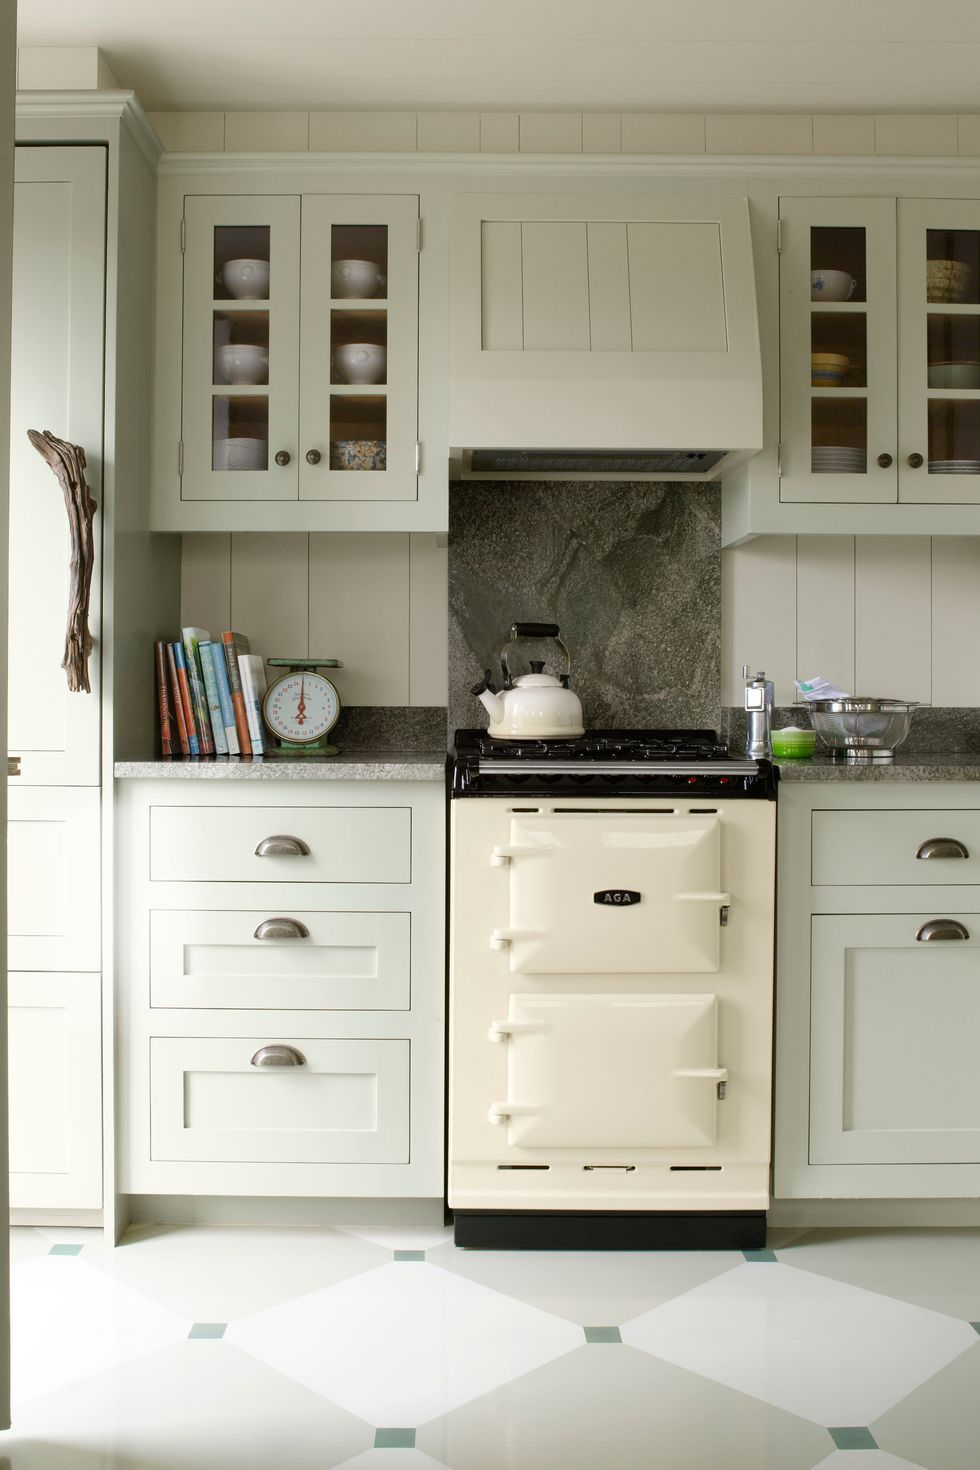 Ideas for kitchen decor   Inspiring Kitchen Decorating Ideas  Stoves of all sorts